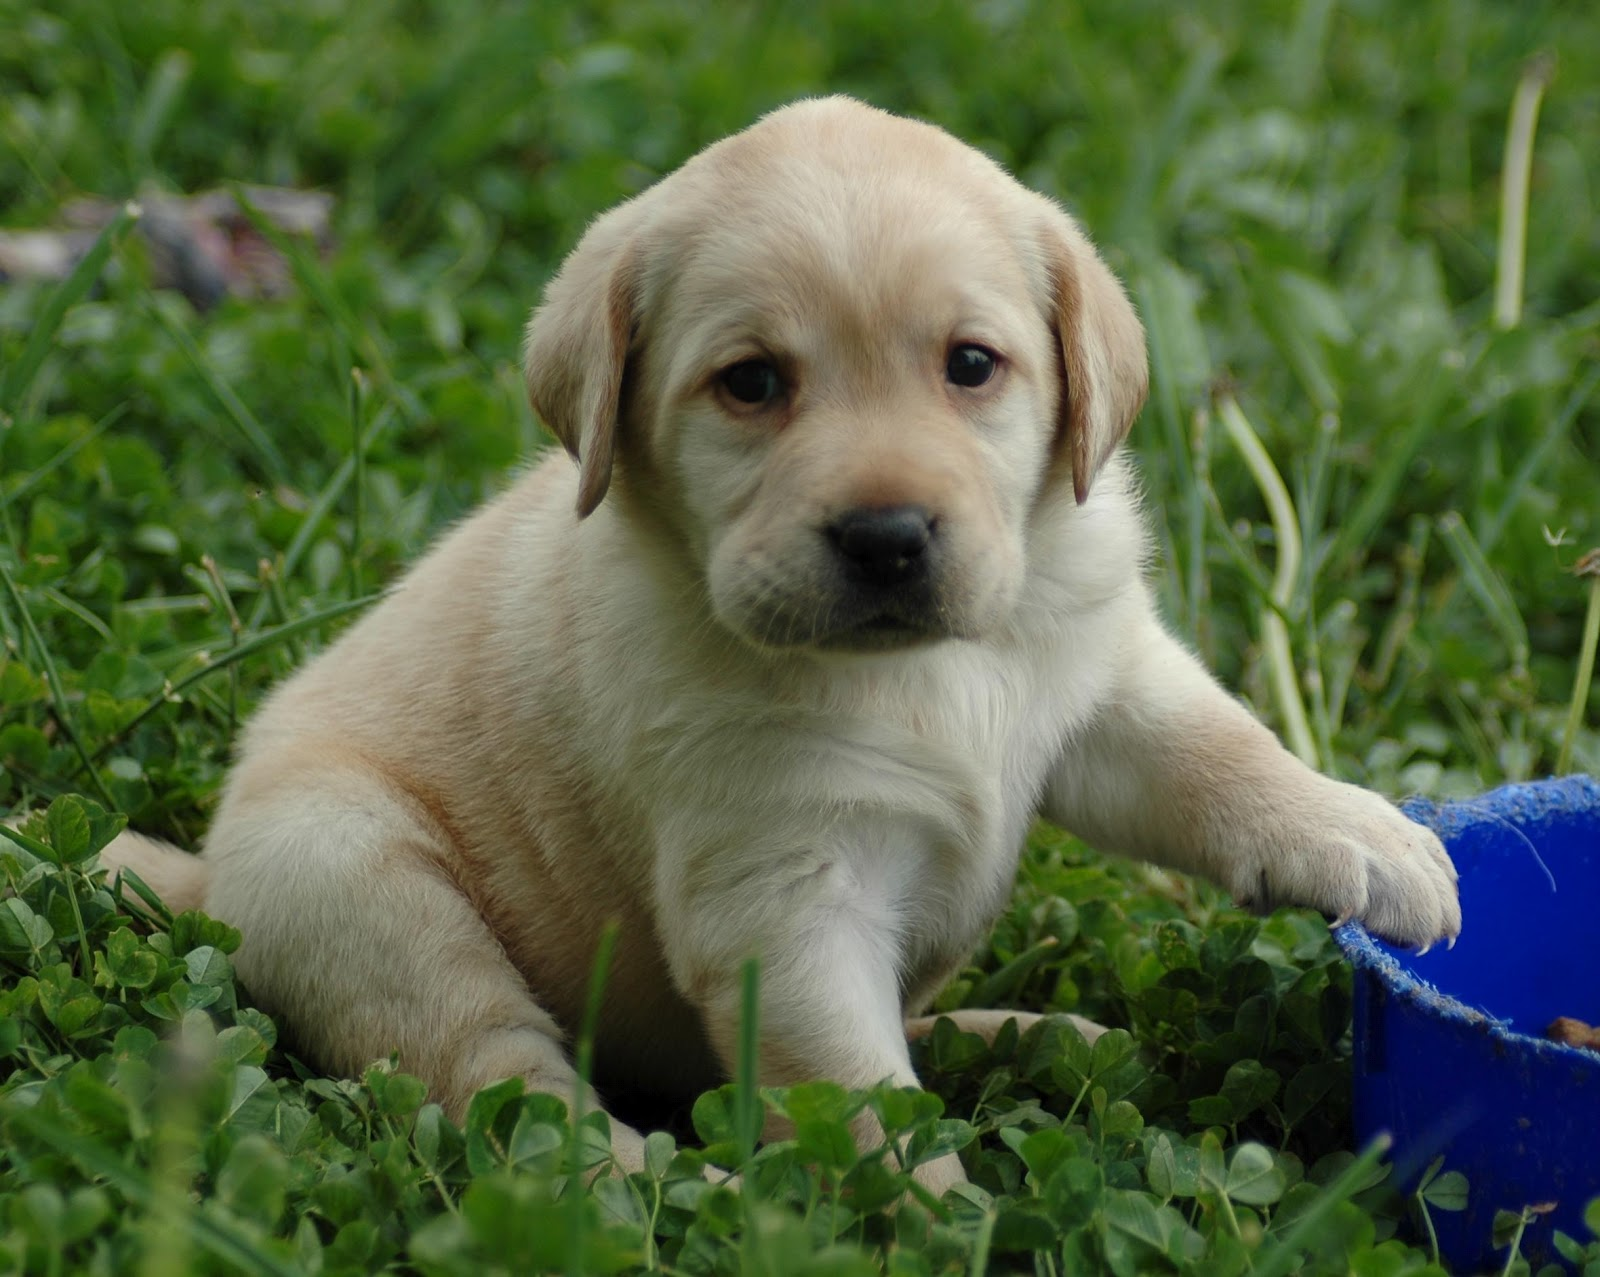 Cute Puppies Wallpapers   Very Cute Puppies Wallpapers 1600x1277